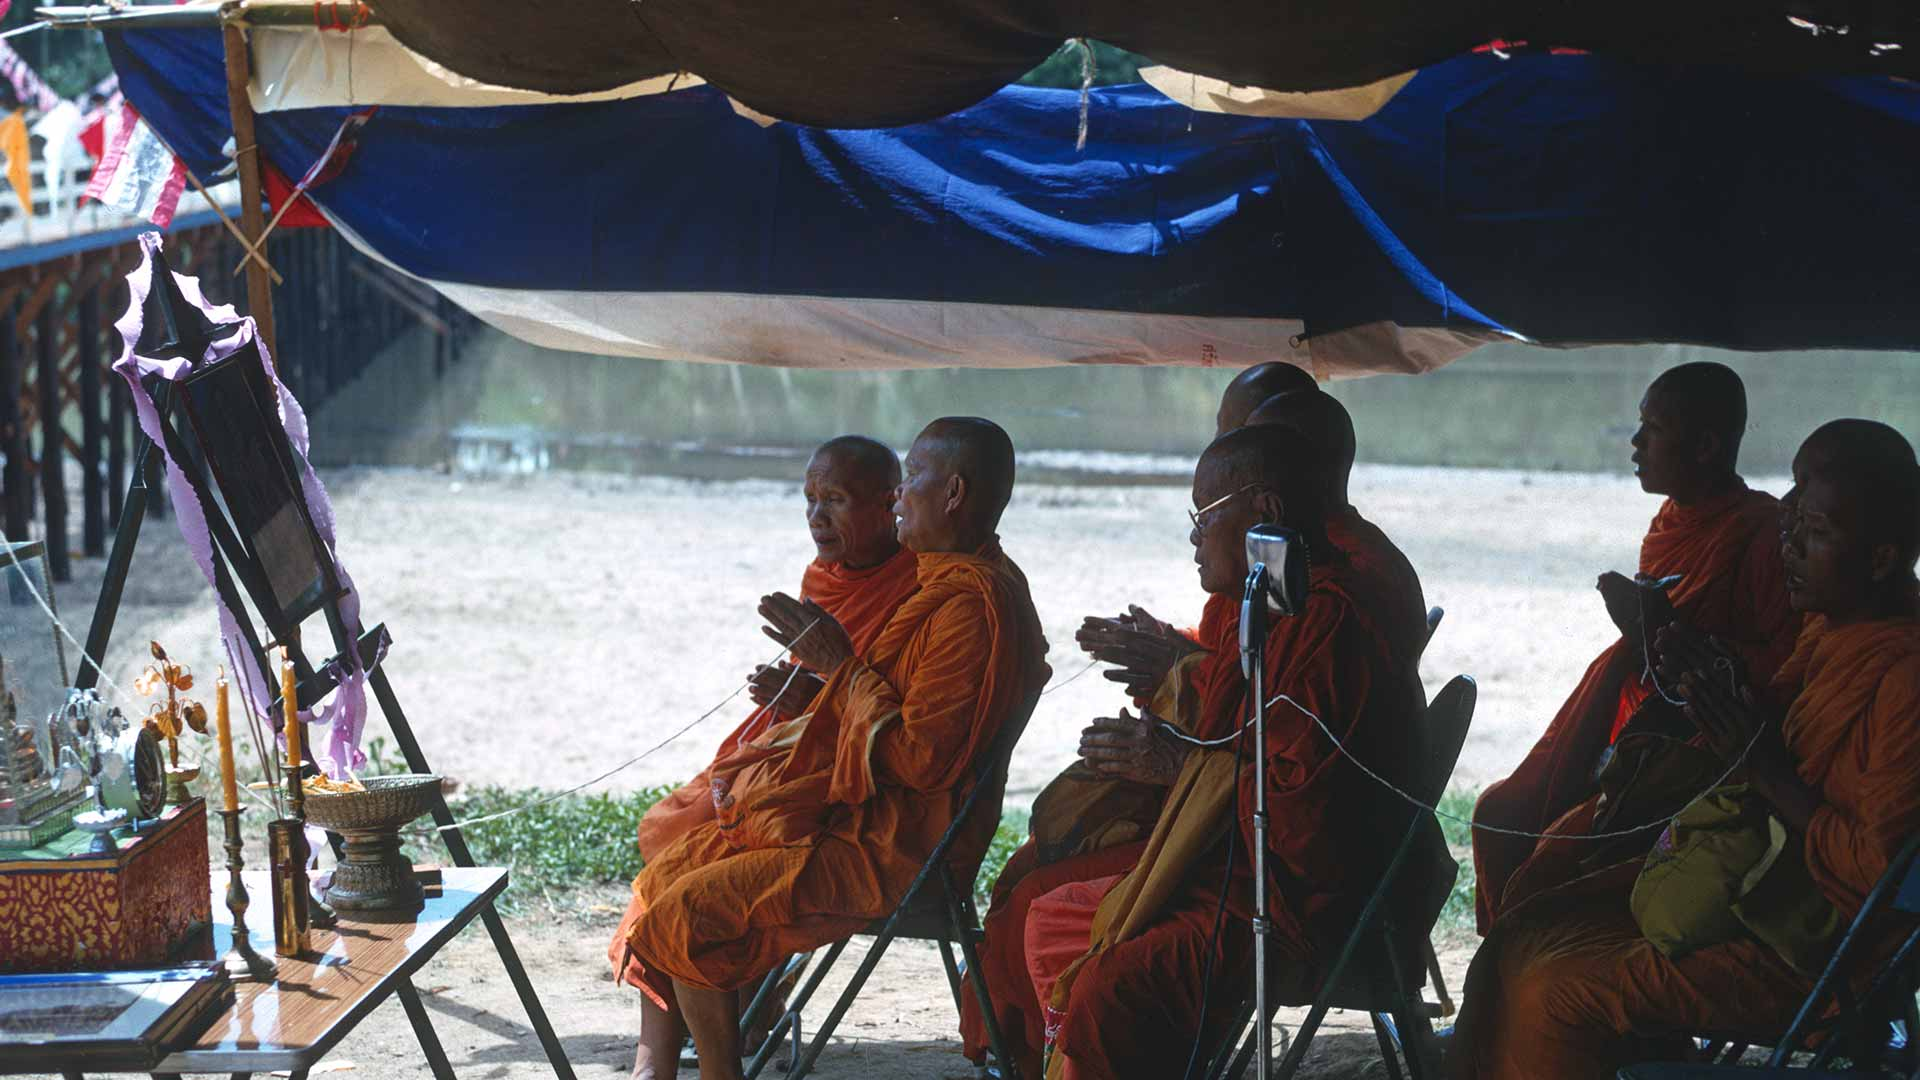 monks sit on folding chairs under a tent and pray to a picture of Buddha.